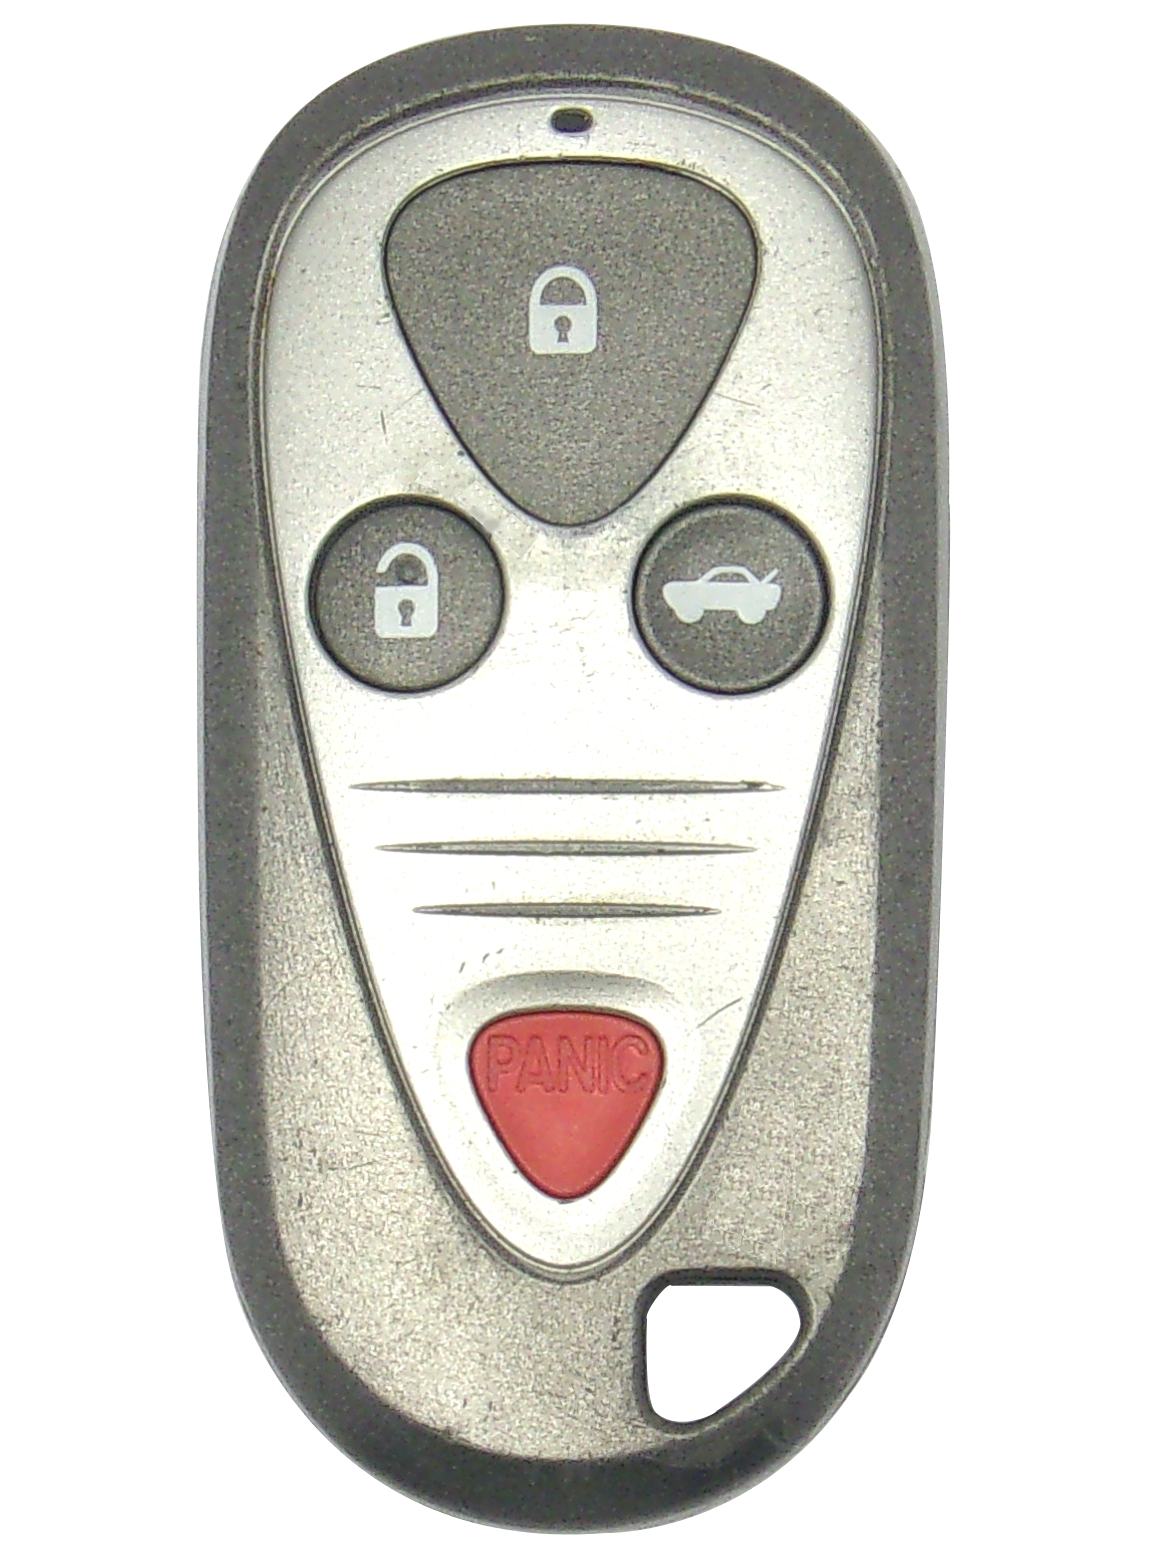 Acura Keyless Entry Remote 4 Button For 2006 Acura Rsx